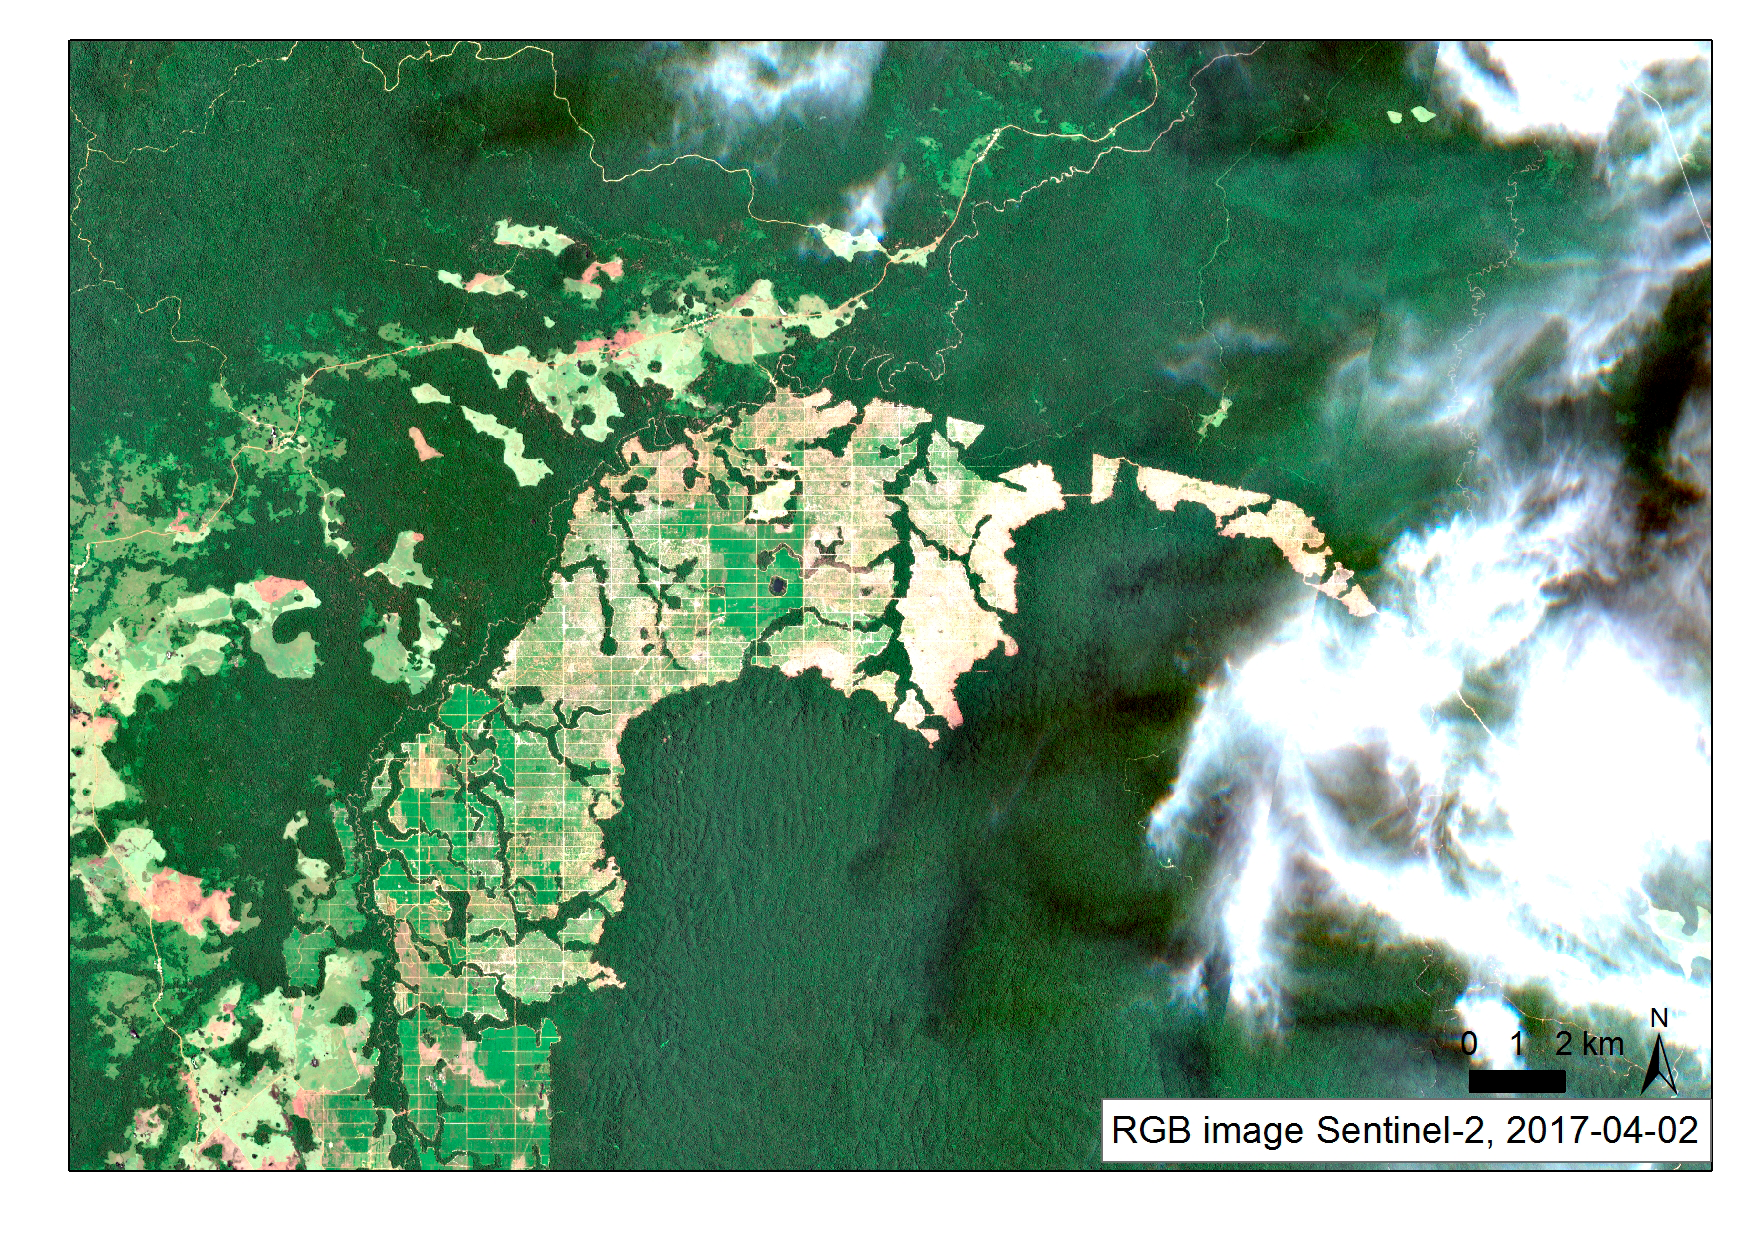 Representation of Deforestation with Sentinel-1 data Gabon 2015-2017